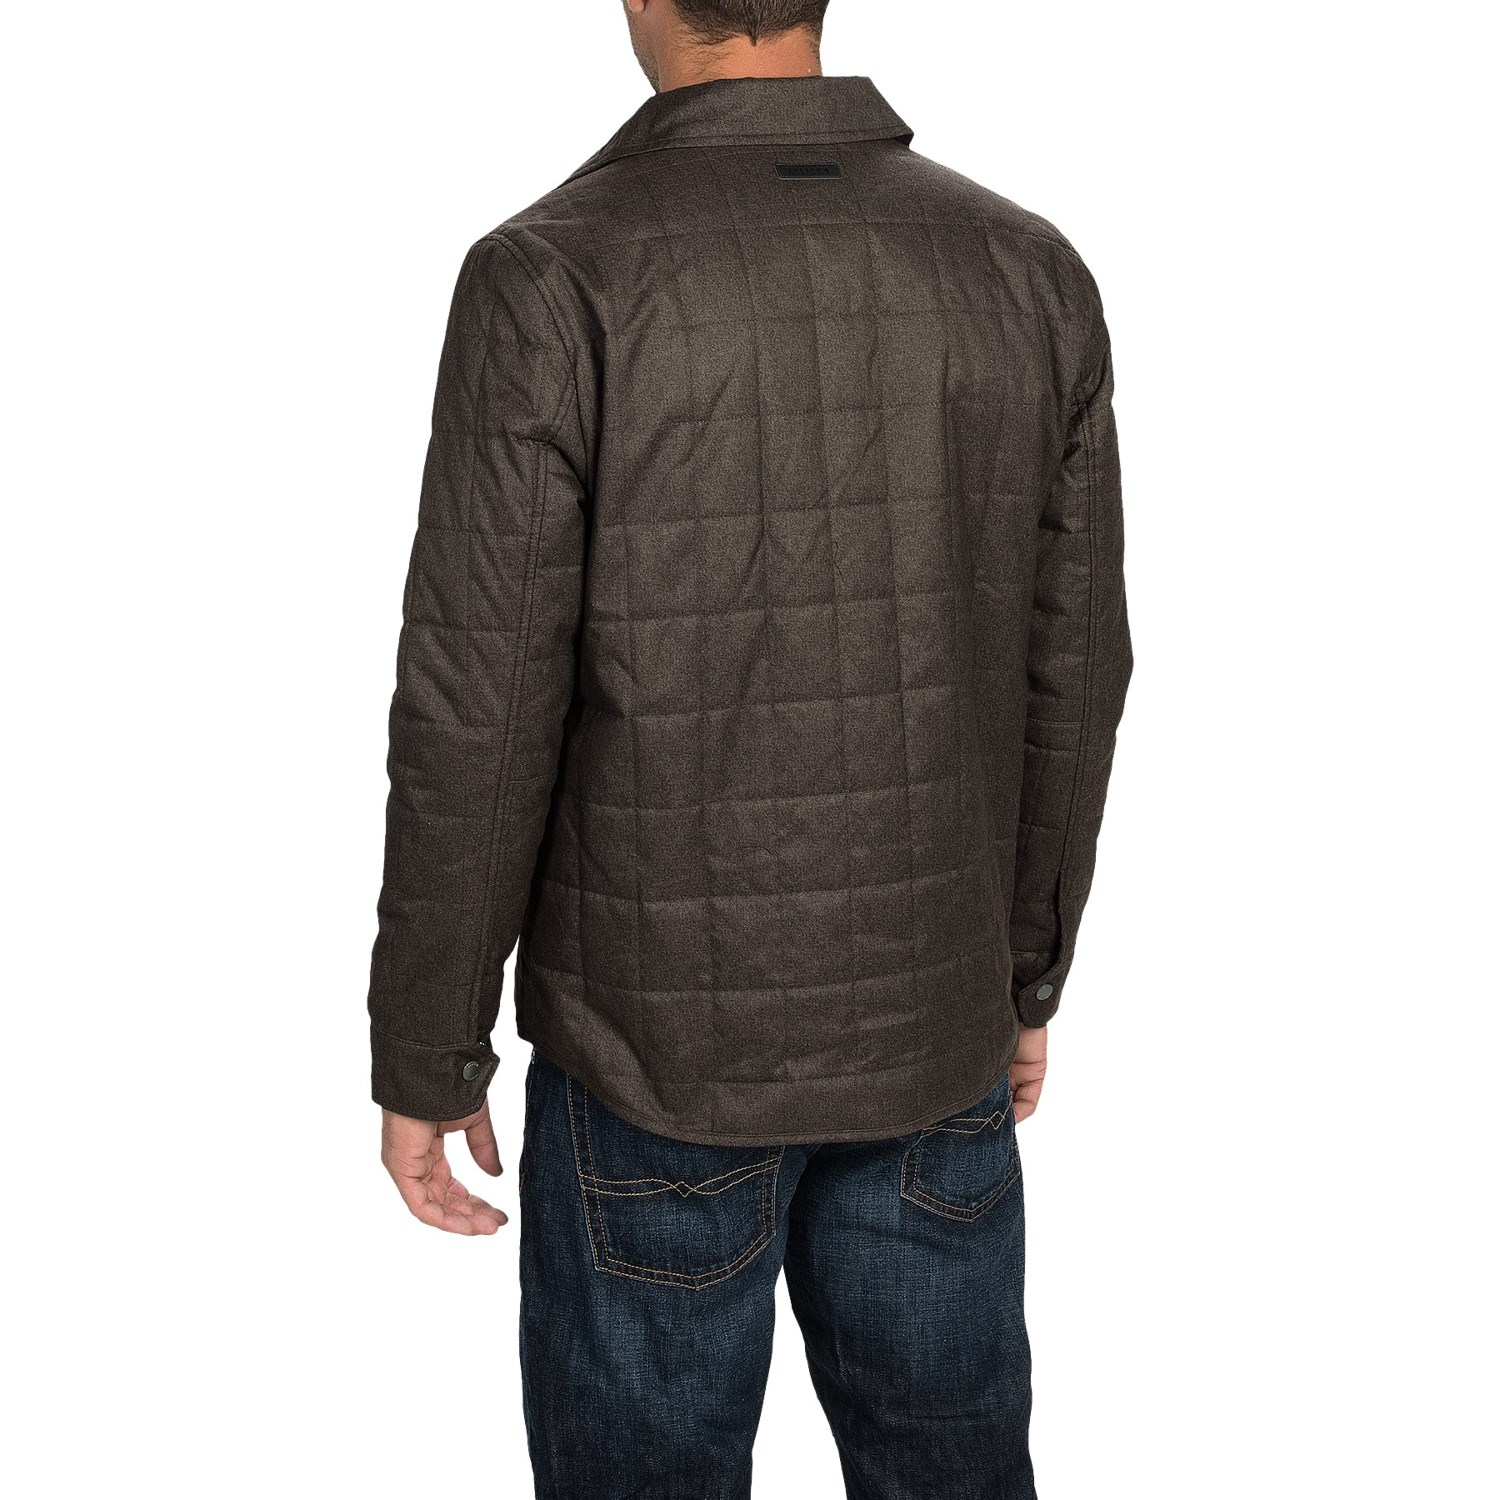 Braveman Men's Quilted Blazer Jacket: Lightweight Quilted Jacket, 5 Large Buttons Keep the Cold Out, Features Two Front Pockets and One Breast Pocket. % Polyester, Imported.